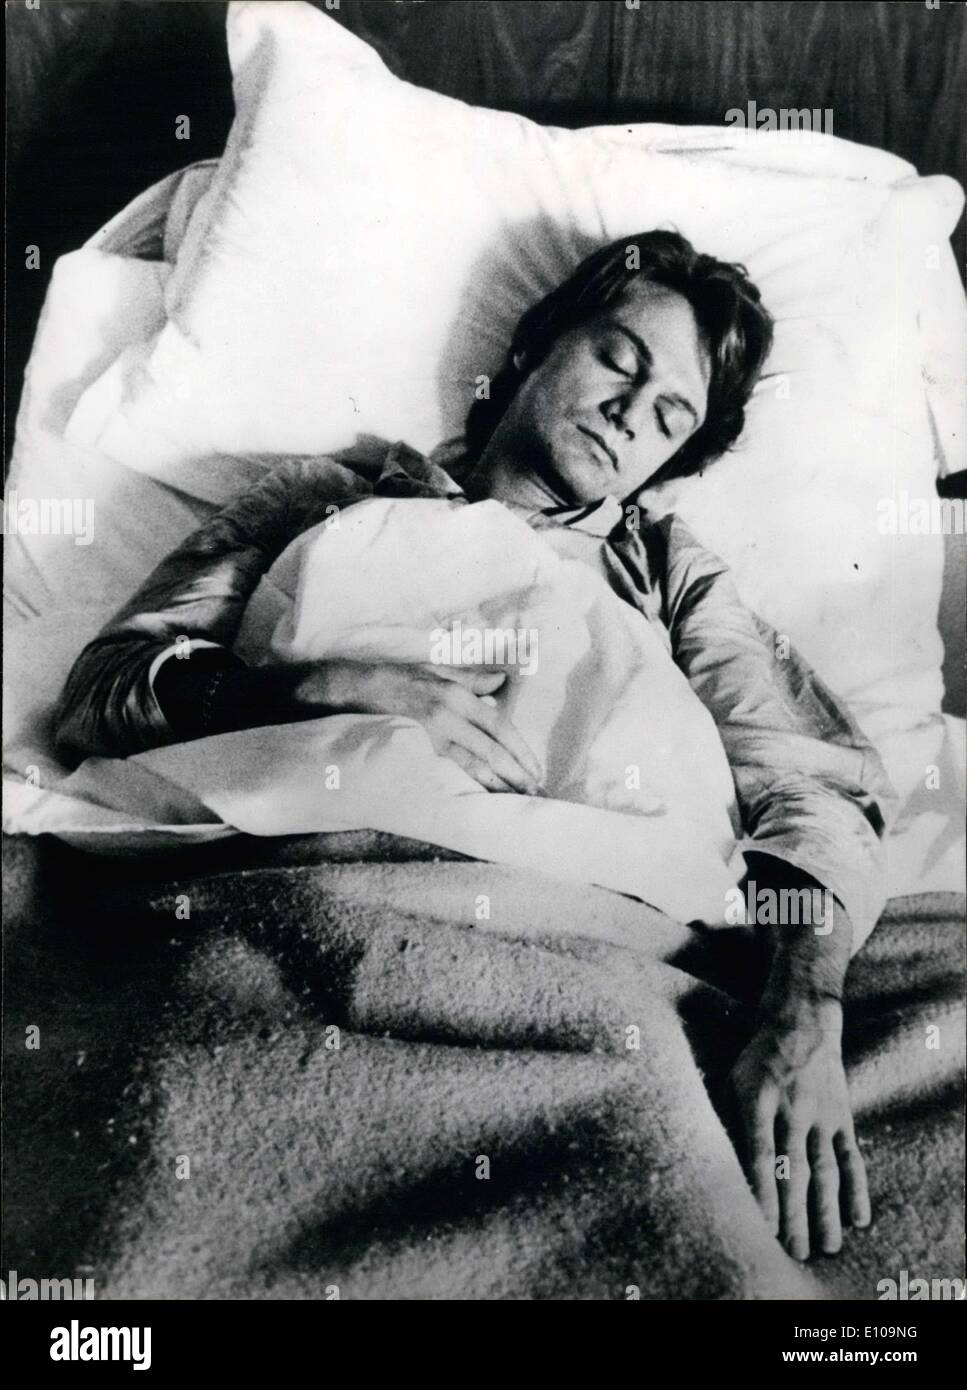 Mar. 18, 1970 - He fainted during a recital and was flown in an ambulance to a Parisian clinic.  Pictur - Stock Image